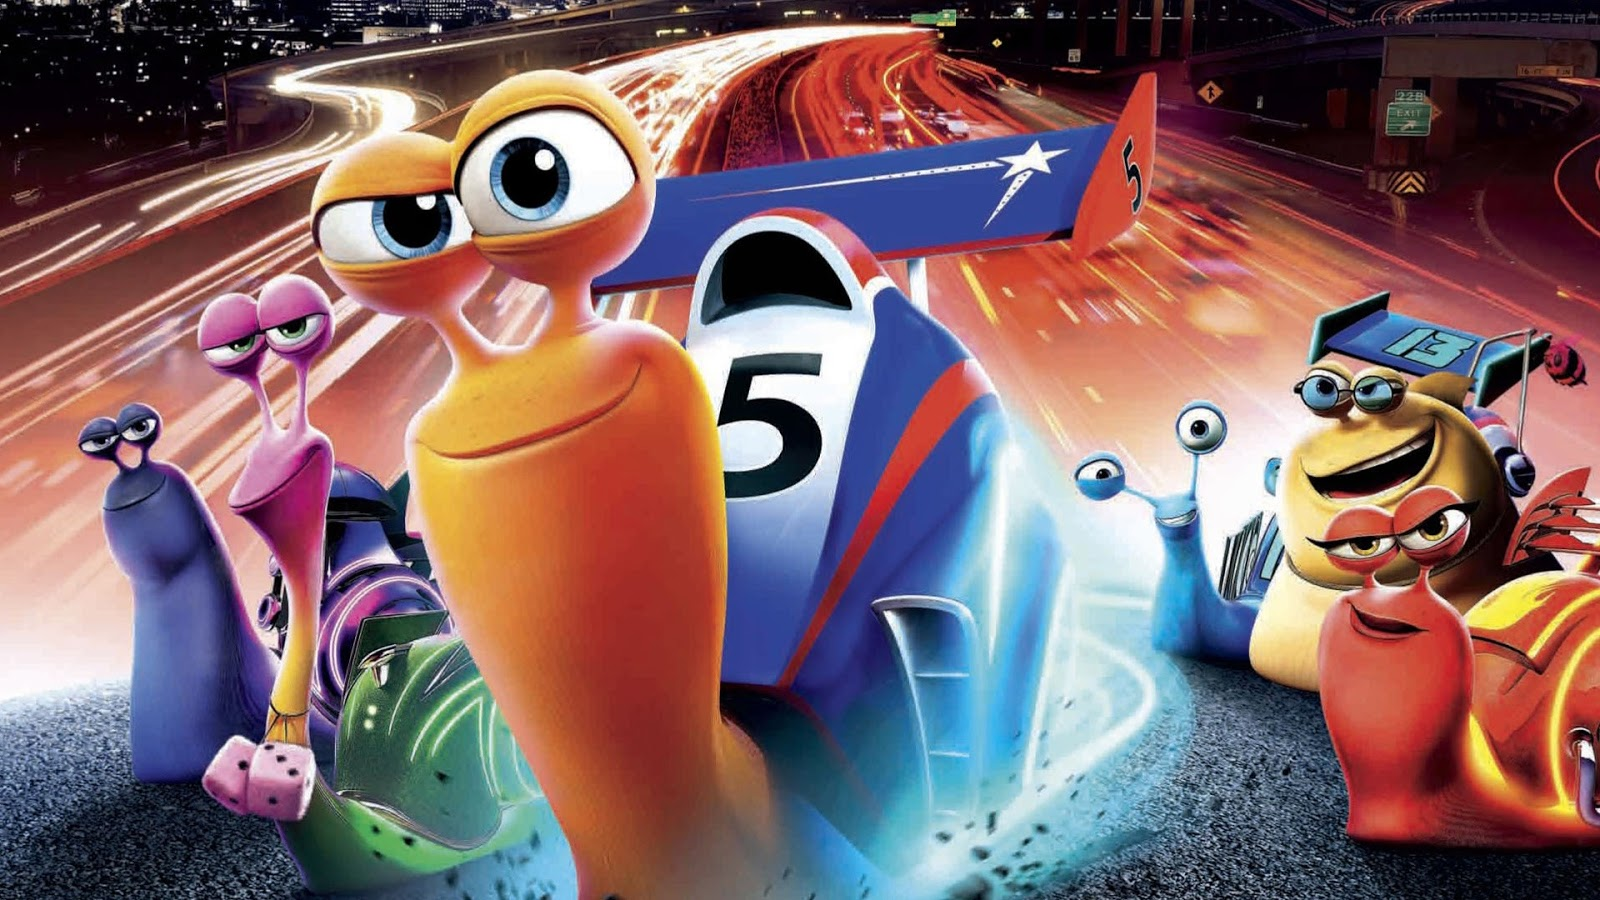 Turbo 2013 movie wallpaper hd wallpapers 1080p get the turbo 2013 cartoon movie wallpaper for your high definition 1080p devices voltagebd Image collections